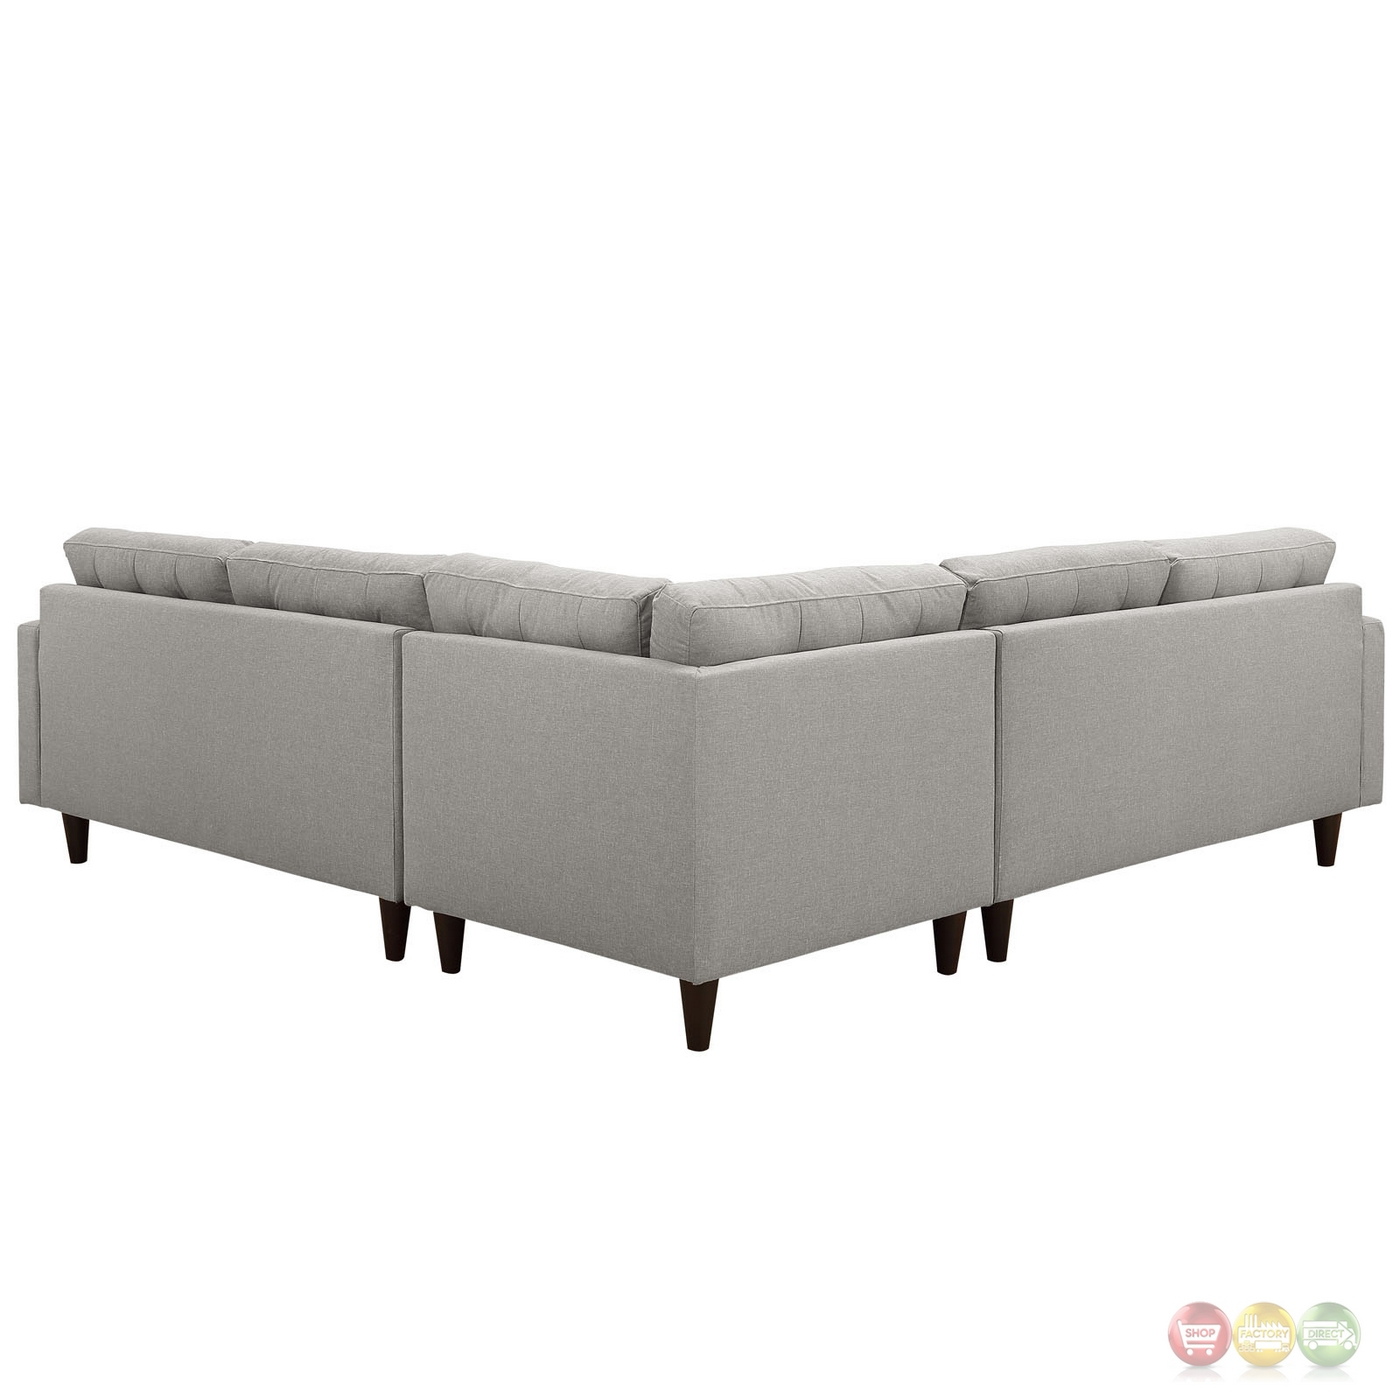 Empress 3 Piece Button-tufted Upholstered Sectional Sofa ...